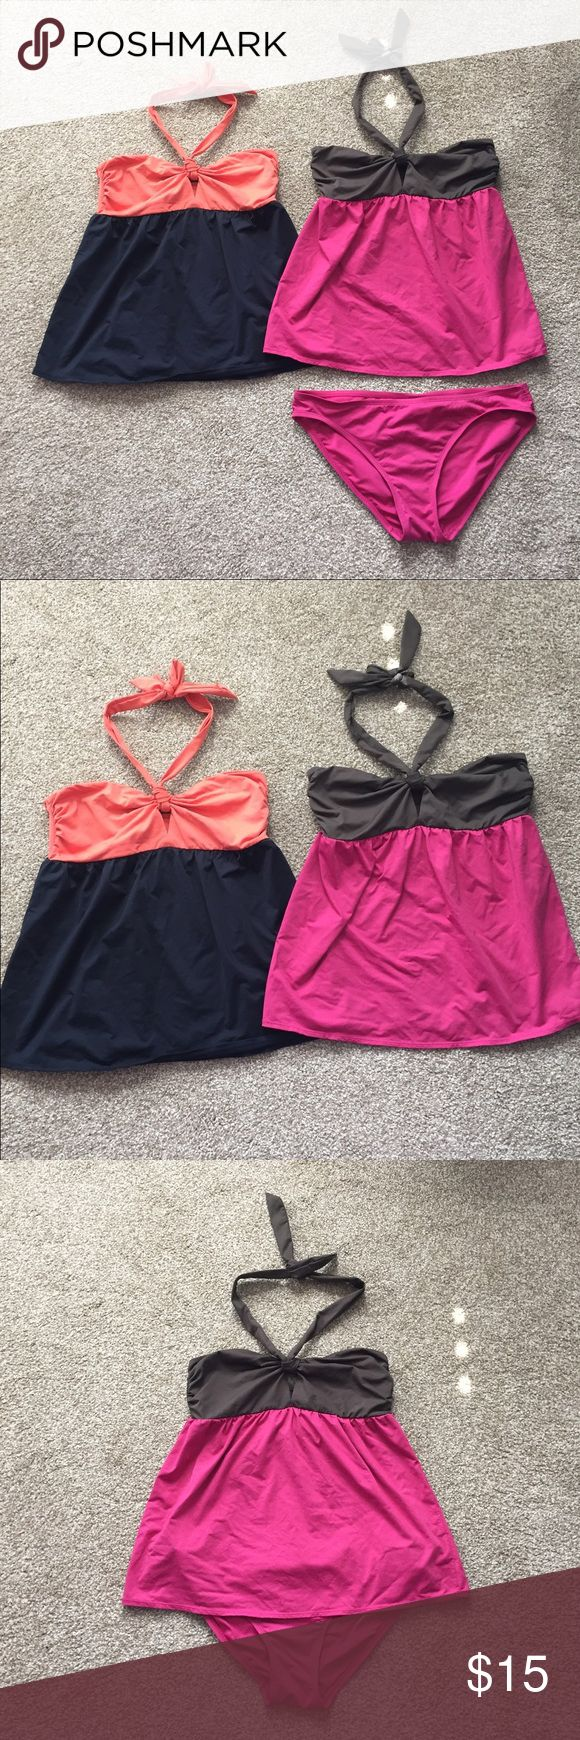 DKNY bathing suit tops/bottom Raspberry pink and brown tankini bathing suit. Ties around neck, loose (maternity style fit) but not a maternity bathing suit. Top is a size small and bottoms are a large. Also have this bathing top in orange/black size small but can't find black bottoms. I wore these once! DKNY Swim